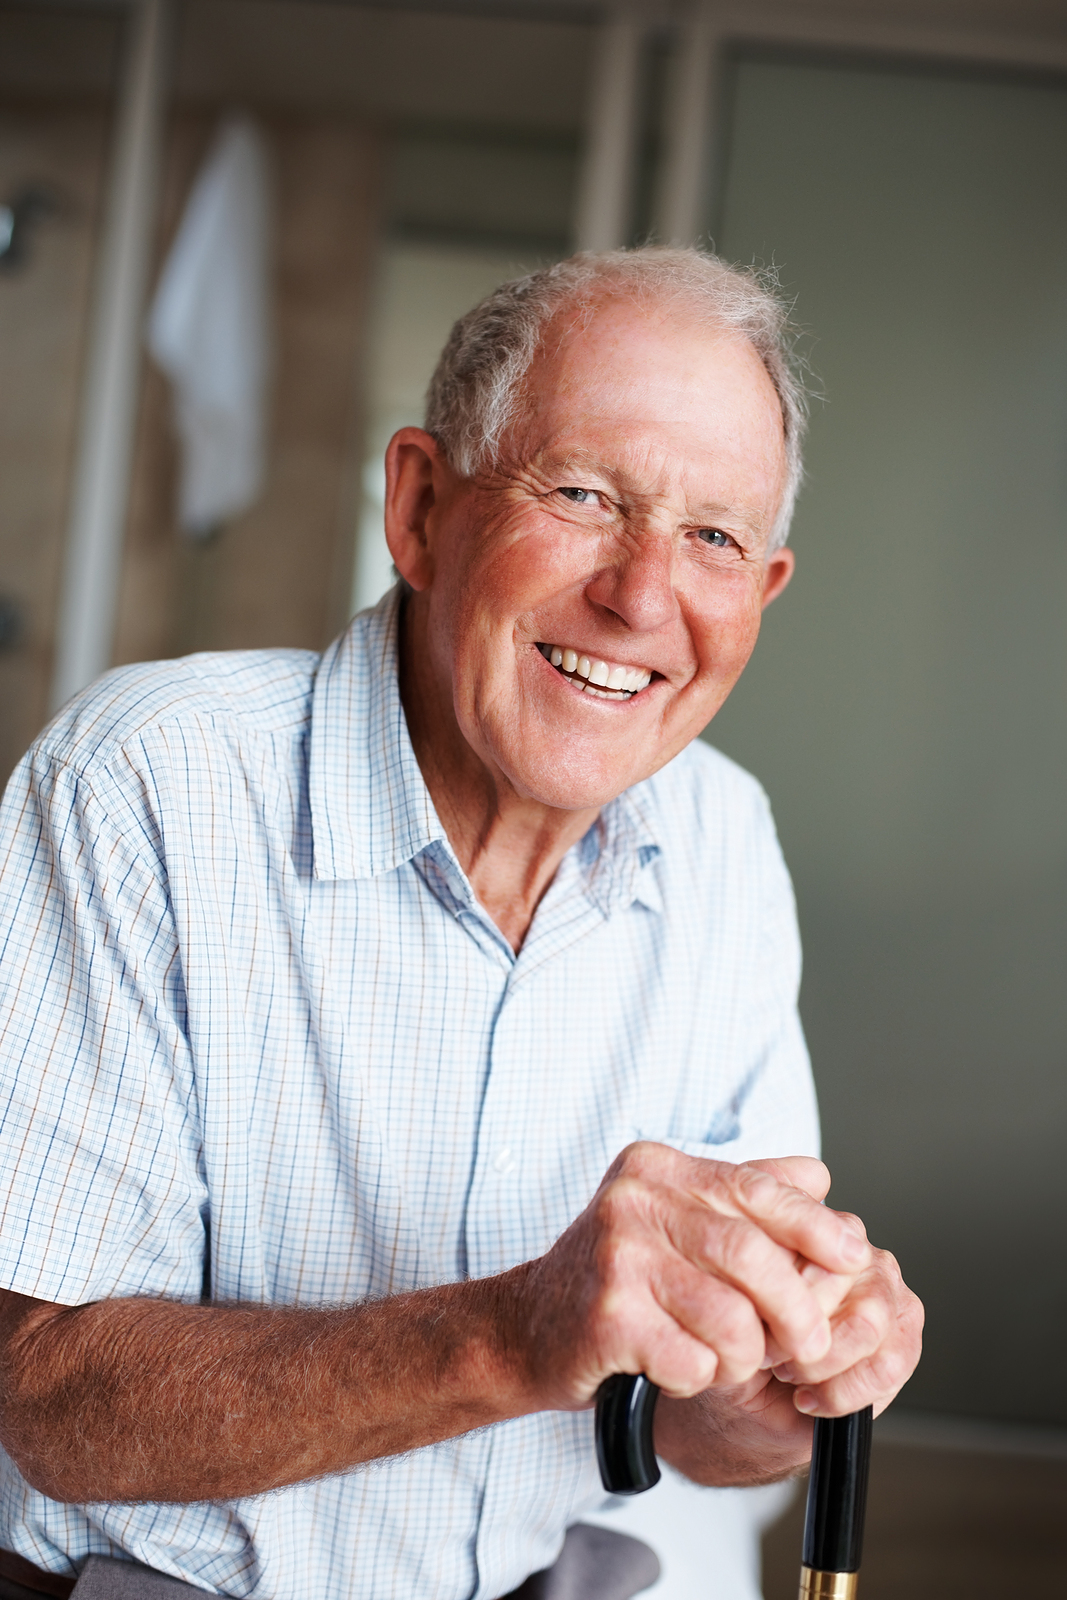 Starting a Domiciliary Care Agency